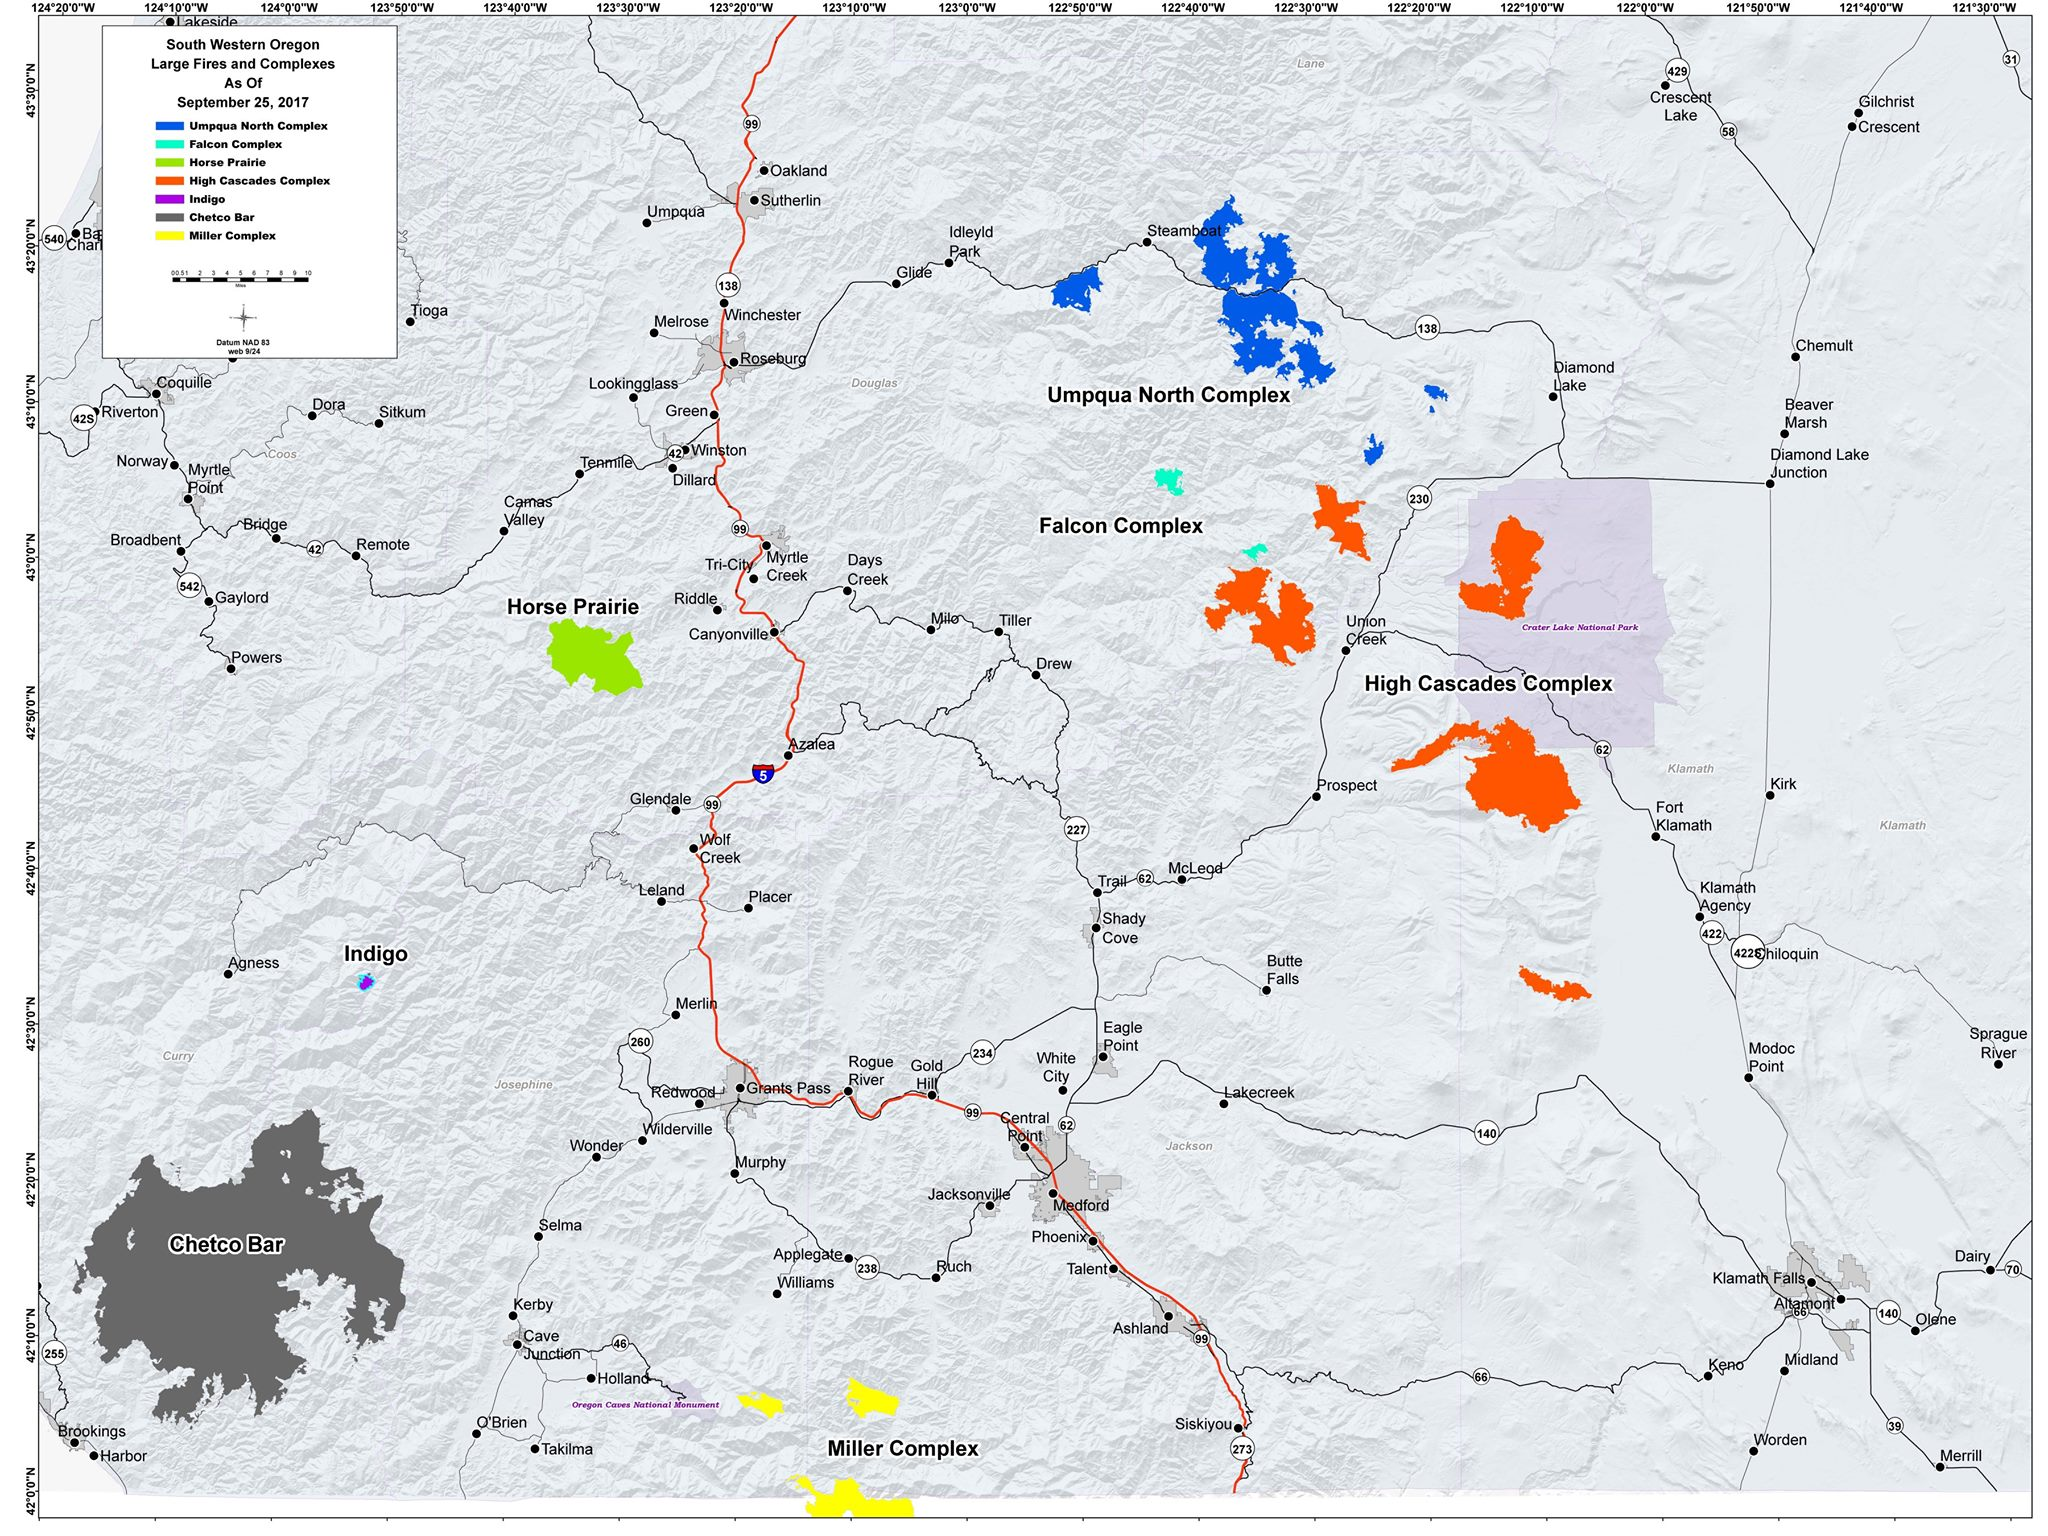 Southern Oregon Fire Map (Inciweb)